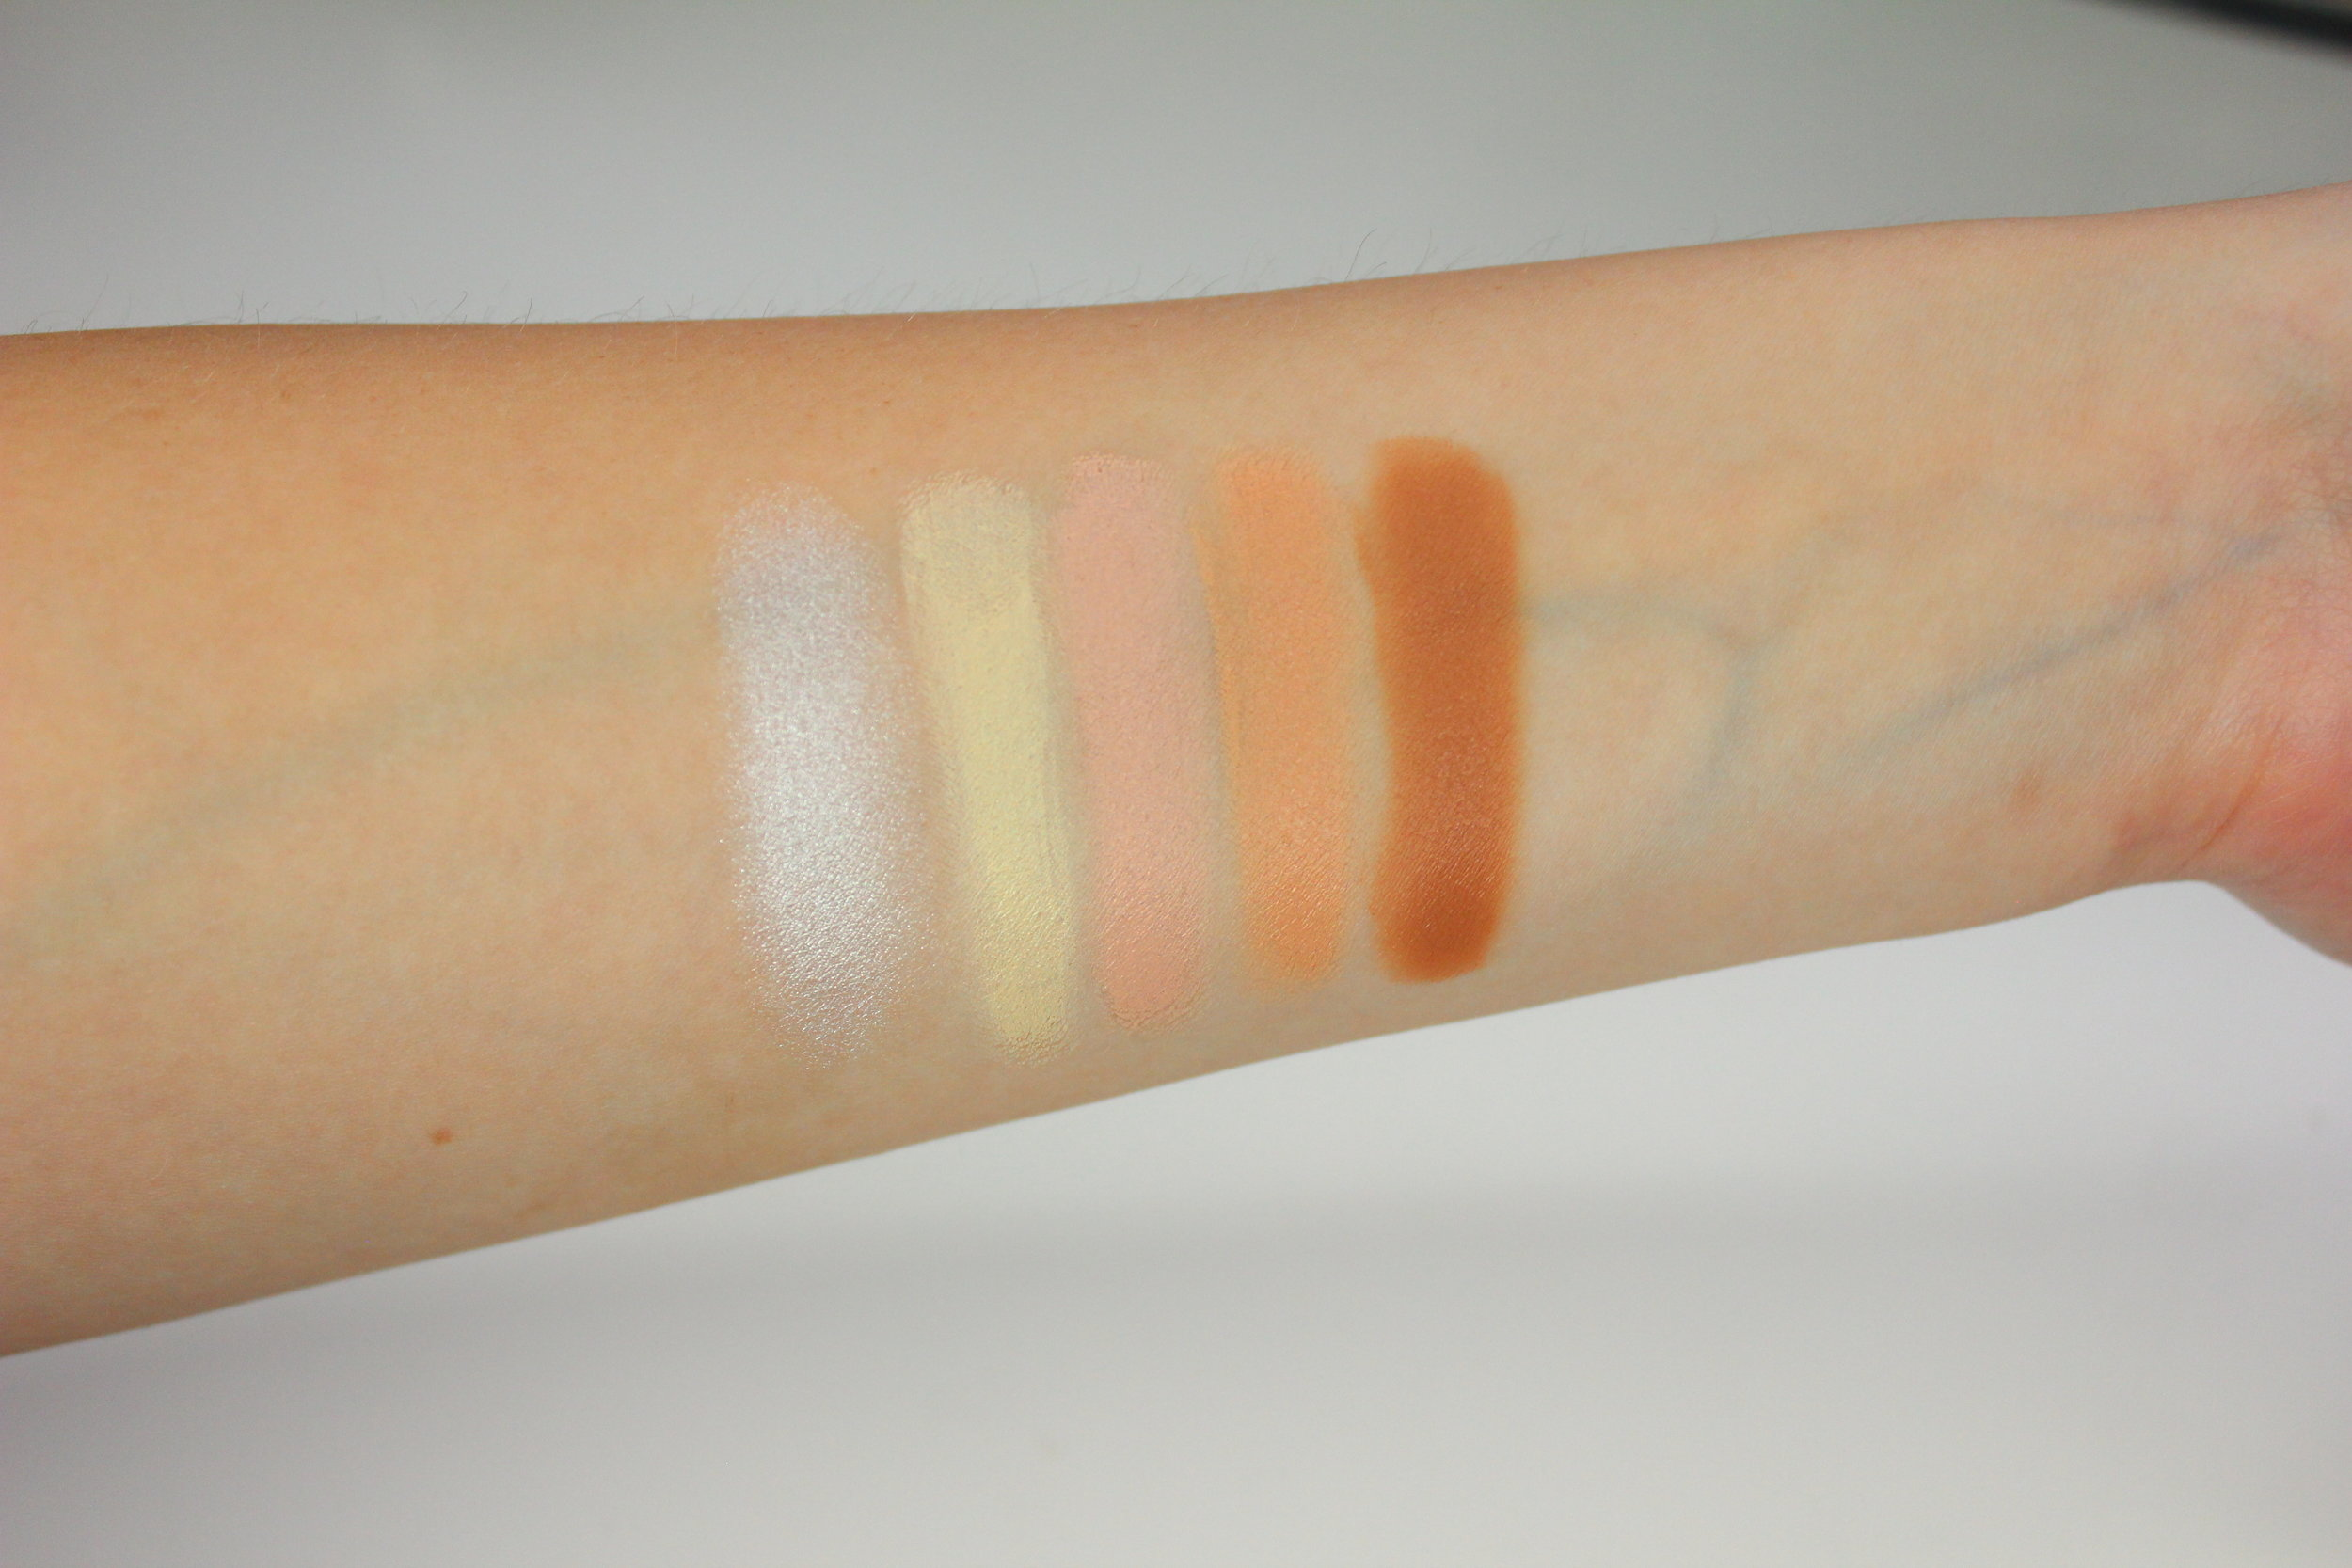 Sedona Lace Concealer Swatches 1